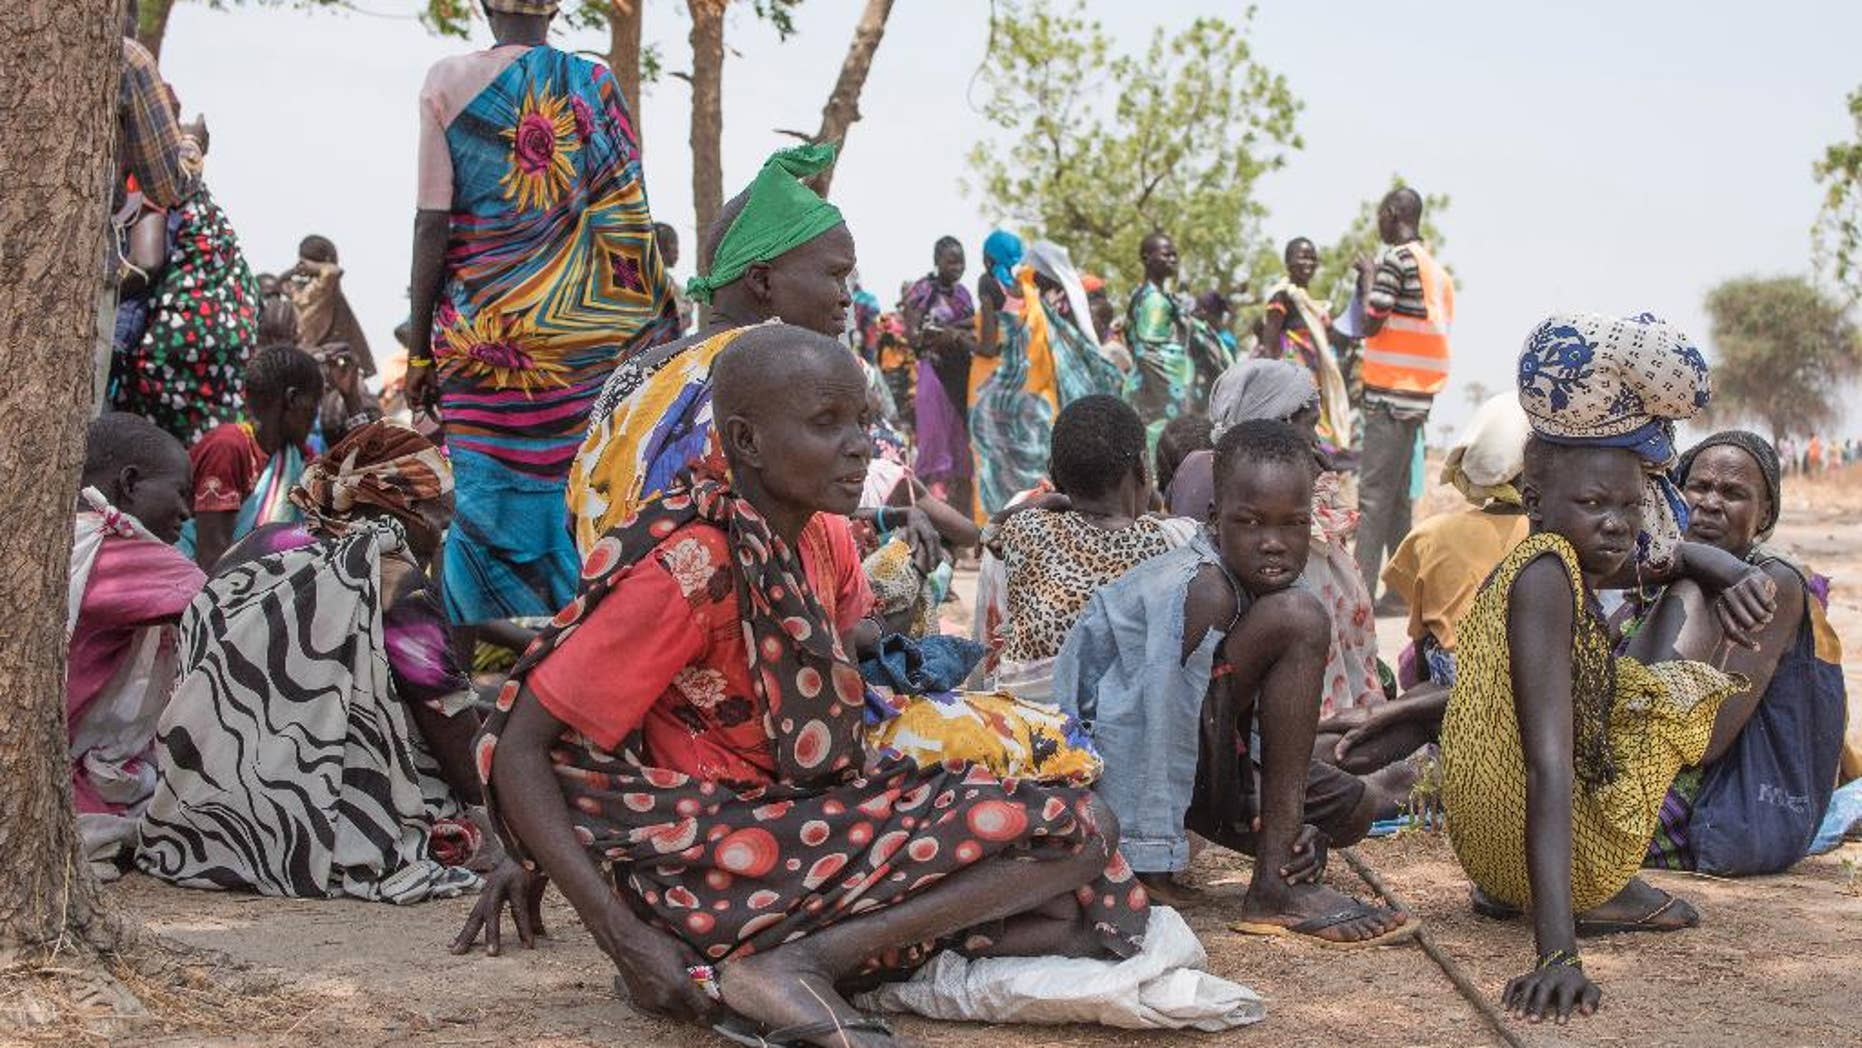 In this photo taken Tuesday, April 11, 2017, Women wait to receive food by ICRC at a site in Leer County region of South Sudan. Two months after a famine was declared in two counties amid its civil war, hunger has become more widespread than expected, aid workers say, region on the brink of starvation and people at risk of dying without sustained food assistance. (AP Photo)